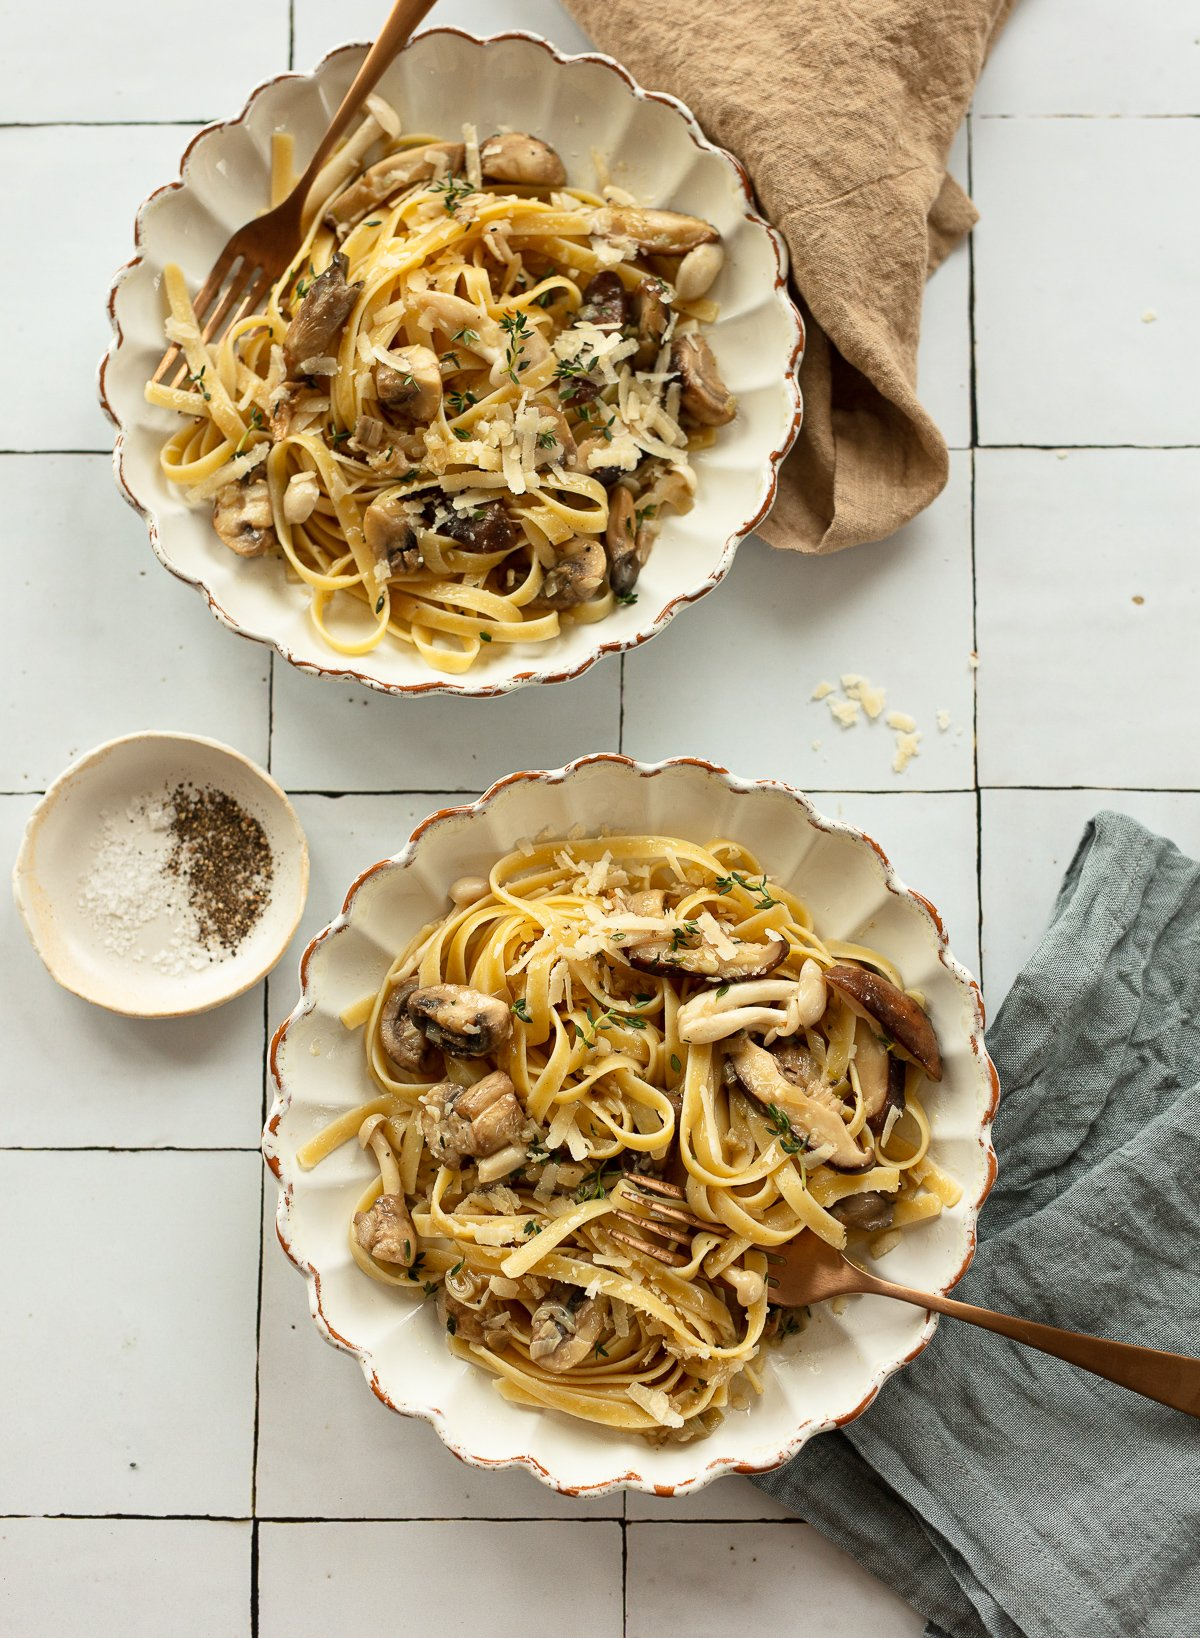 Bowls of fettuccine pasta topped with mushroom sauce, with cheese and forks